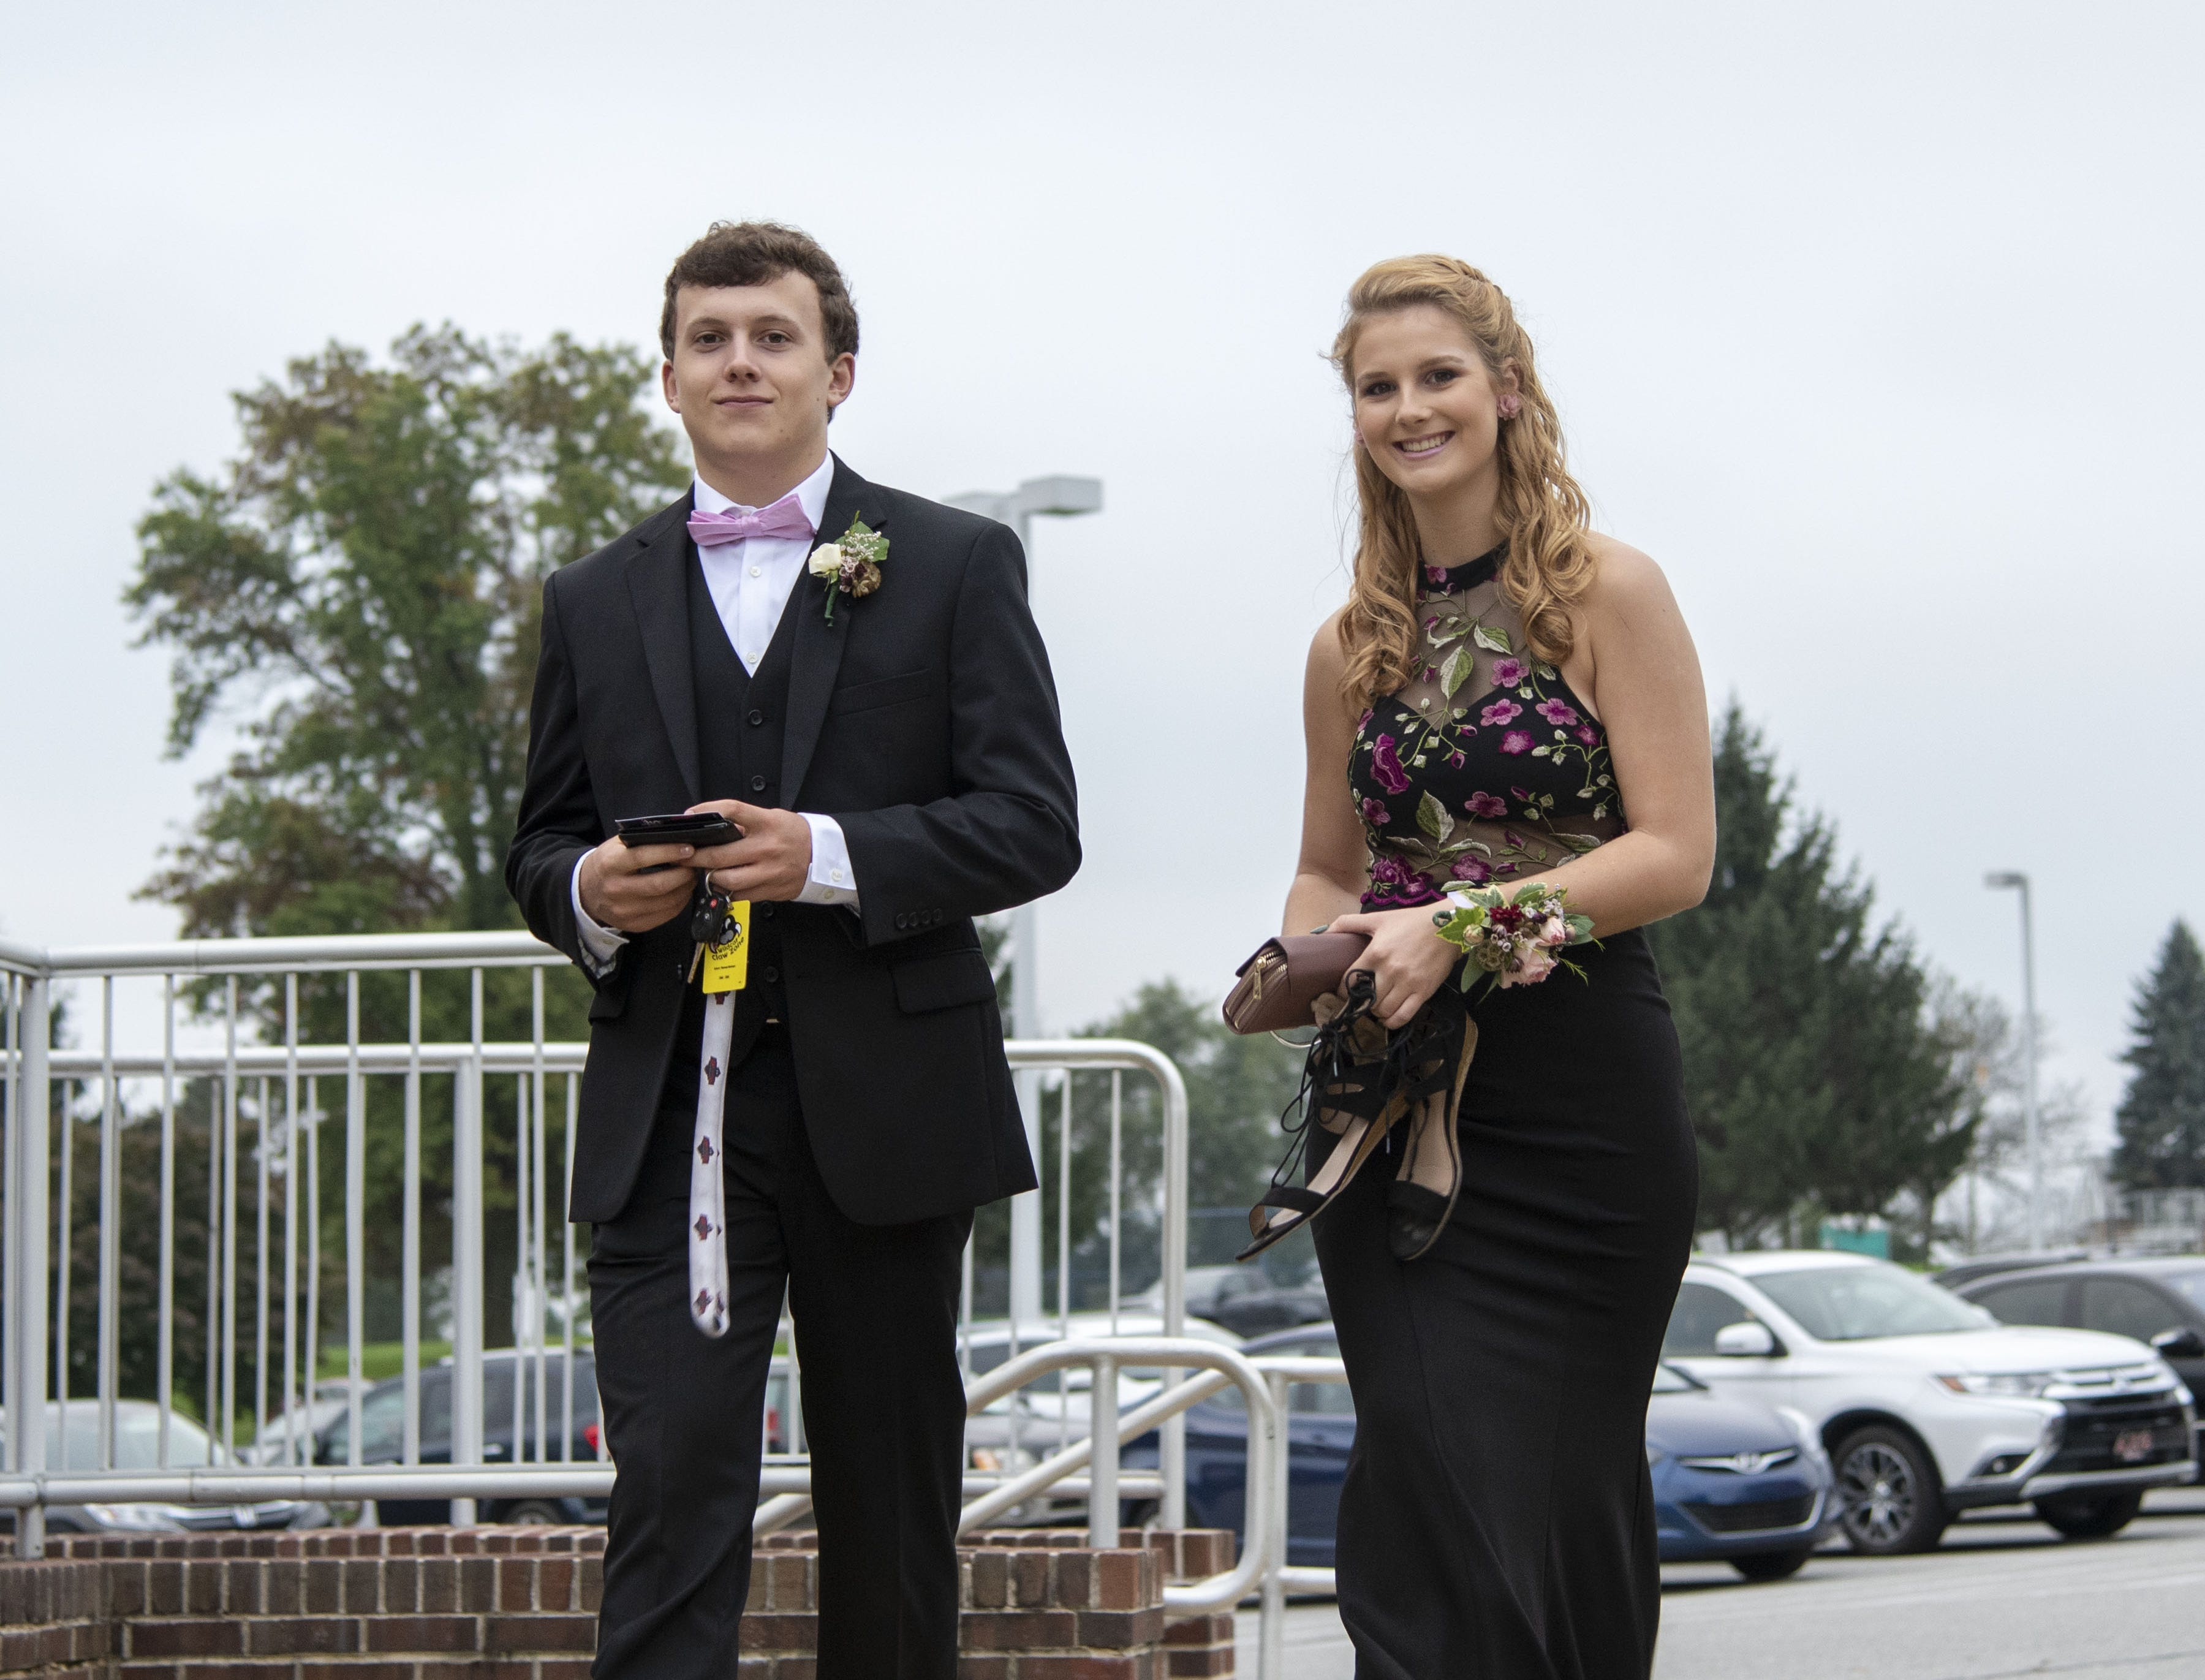 Students arrive to their 2018 High School homecoming dance on Saturday, Oct. 06, 2018.